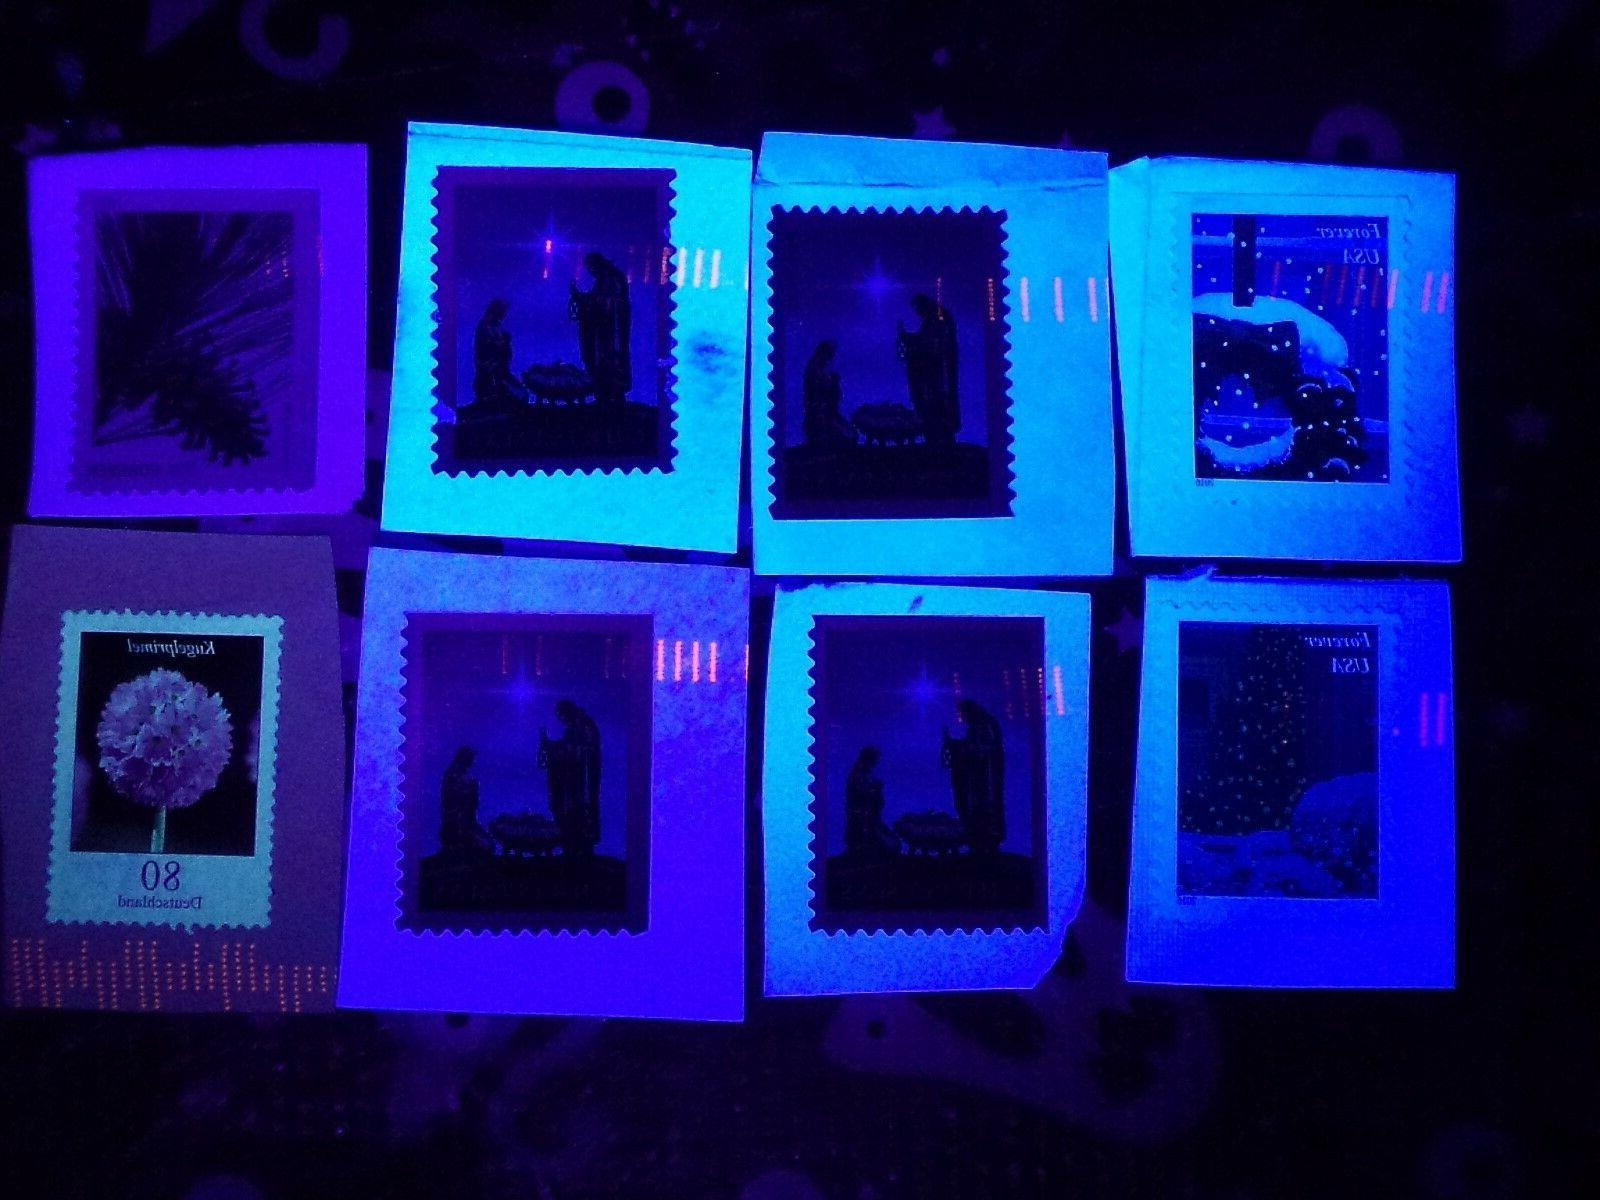 CANCELLED STAMP DETECTOR LIGHT COUNTERFEIT UV ultra violet N